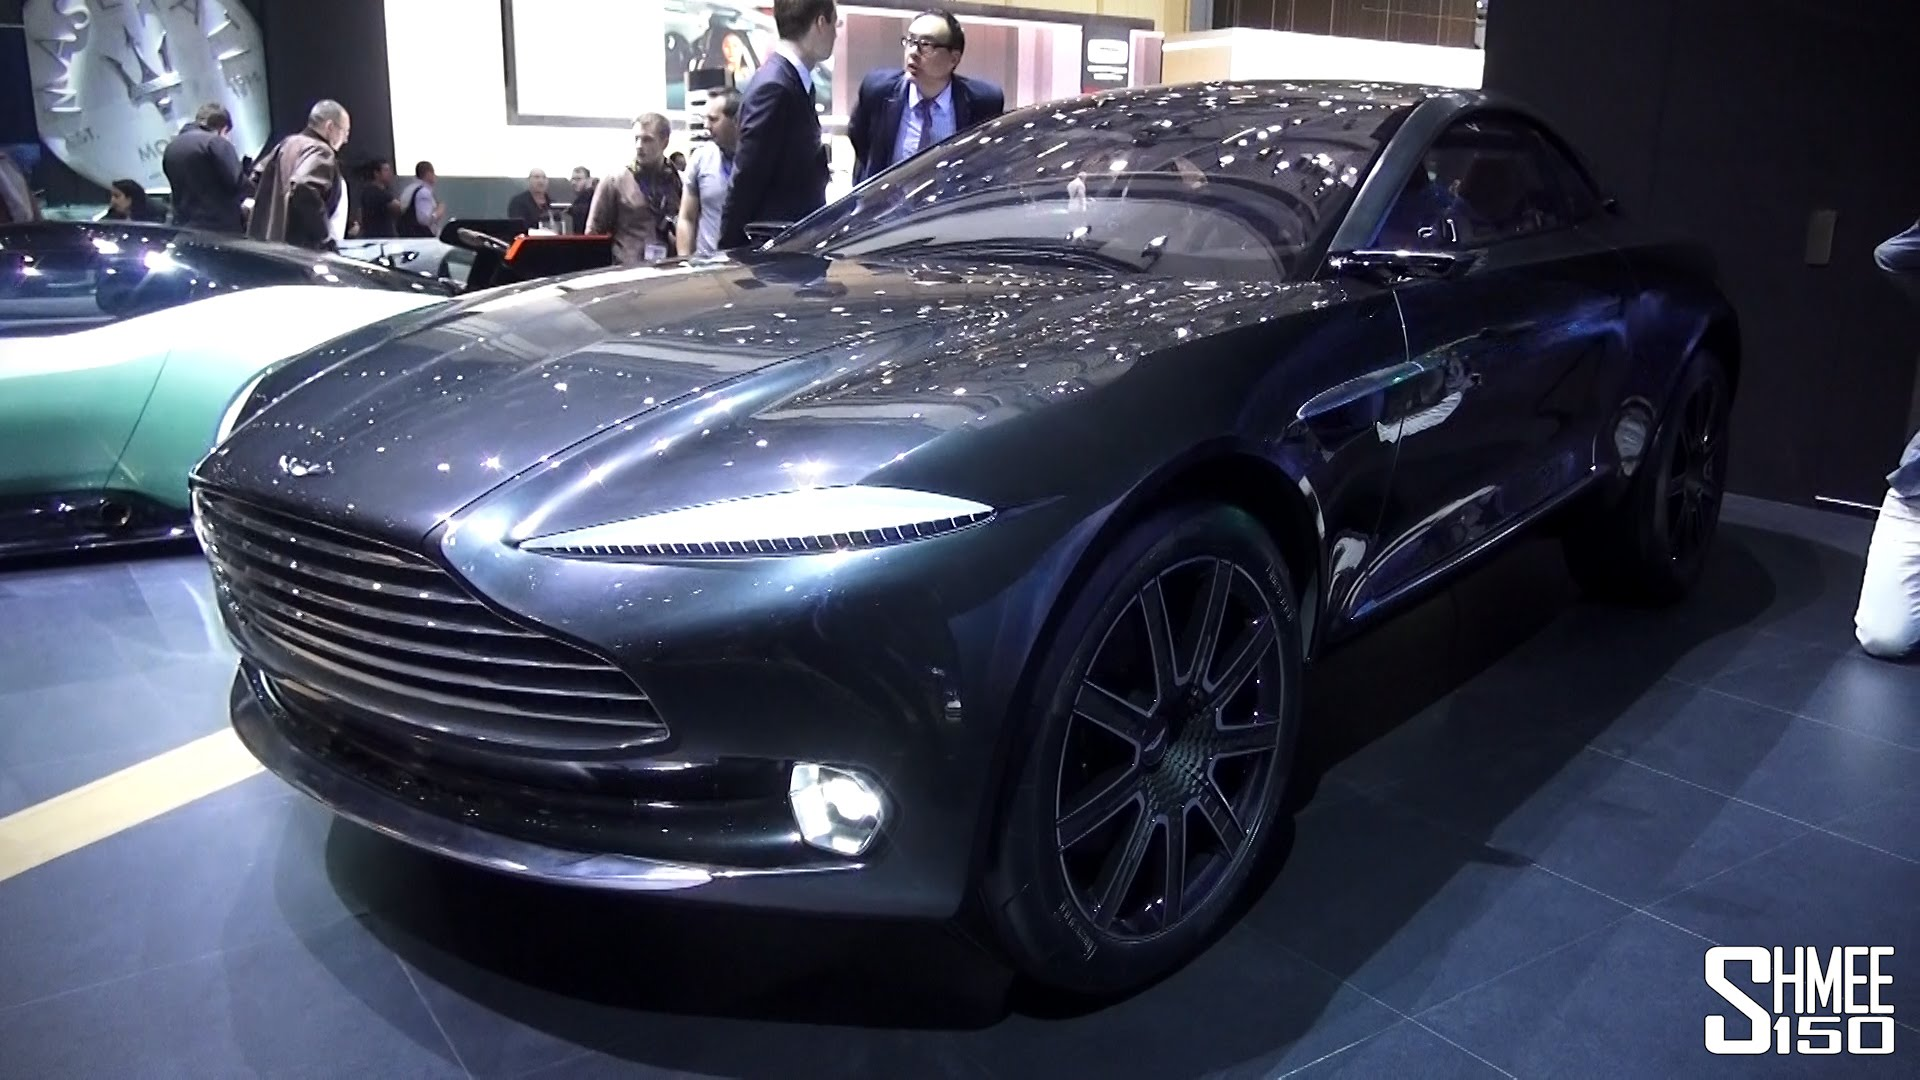 Aston Martin DBX is one of the best technologically advanced cars